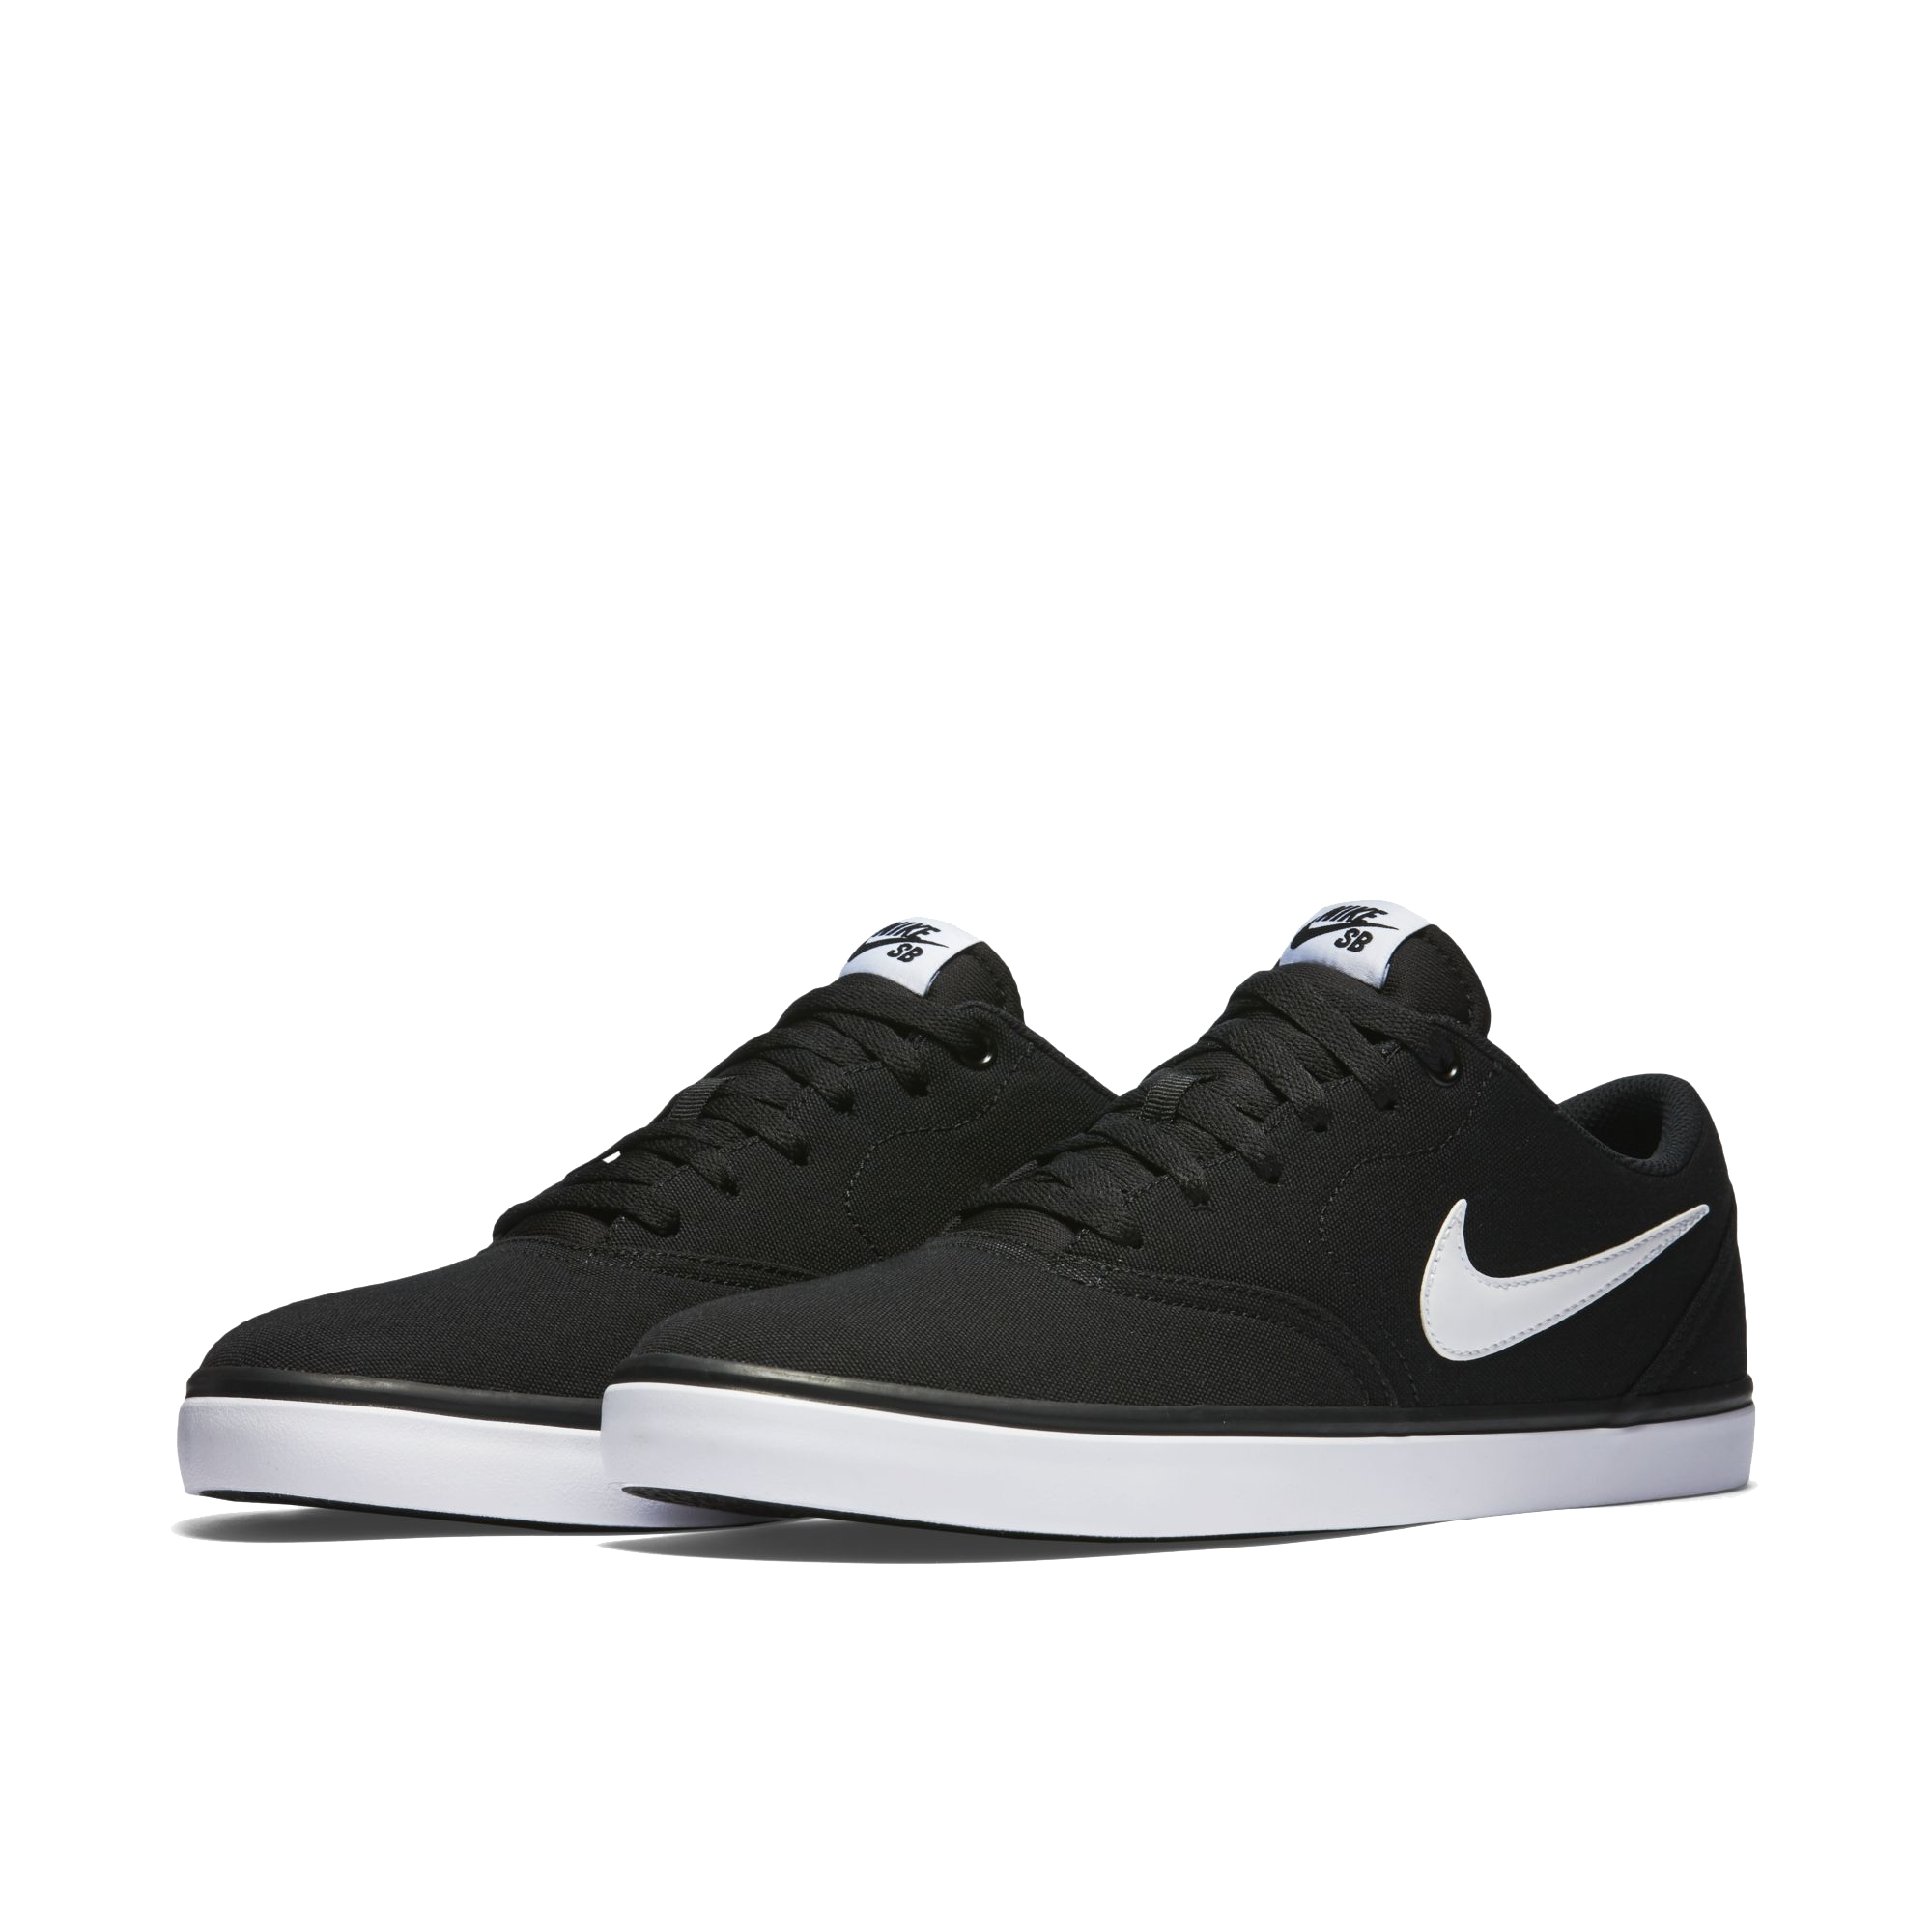 huge selection of 97e55 34c5b Original Authentic Nike SB CHECK SOLAR CNVS Aqua Mostro Men Skateboarding  Shoes Comfortable Breathable Light Weight Flat 843896-in Skateboarding from  Sports ...